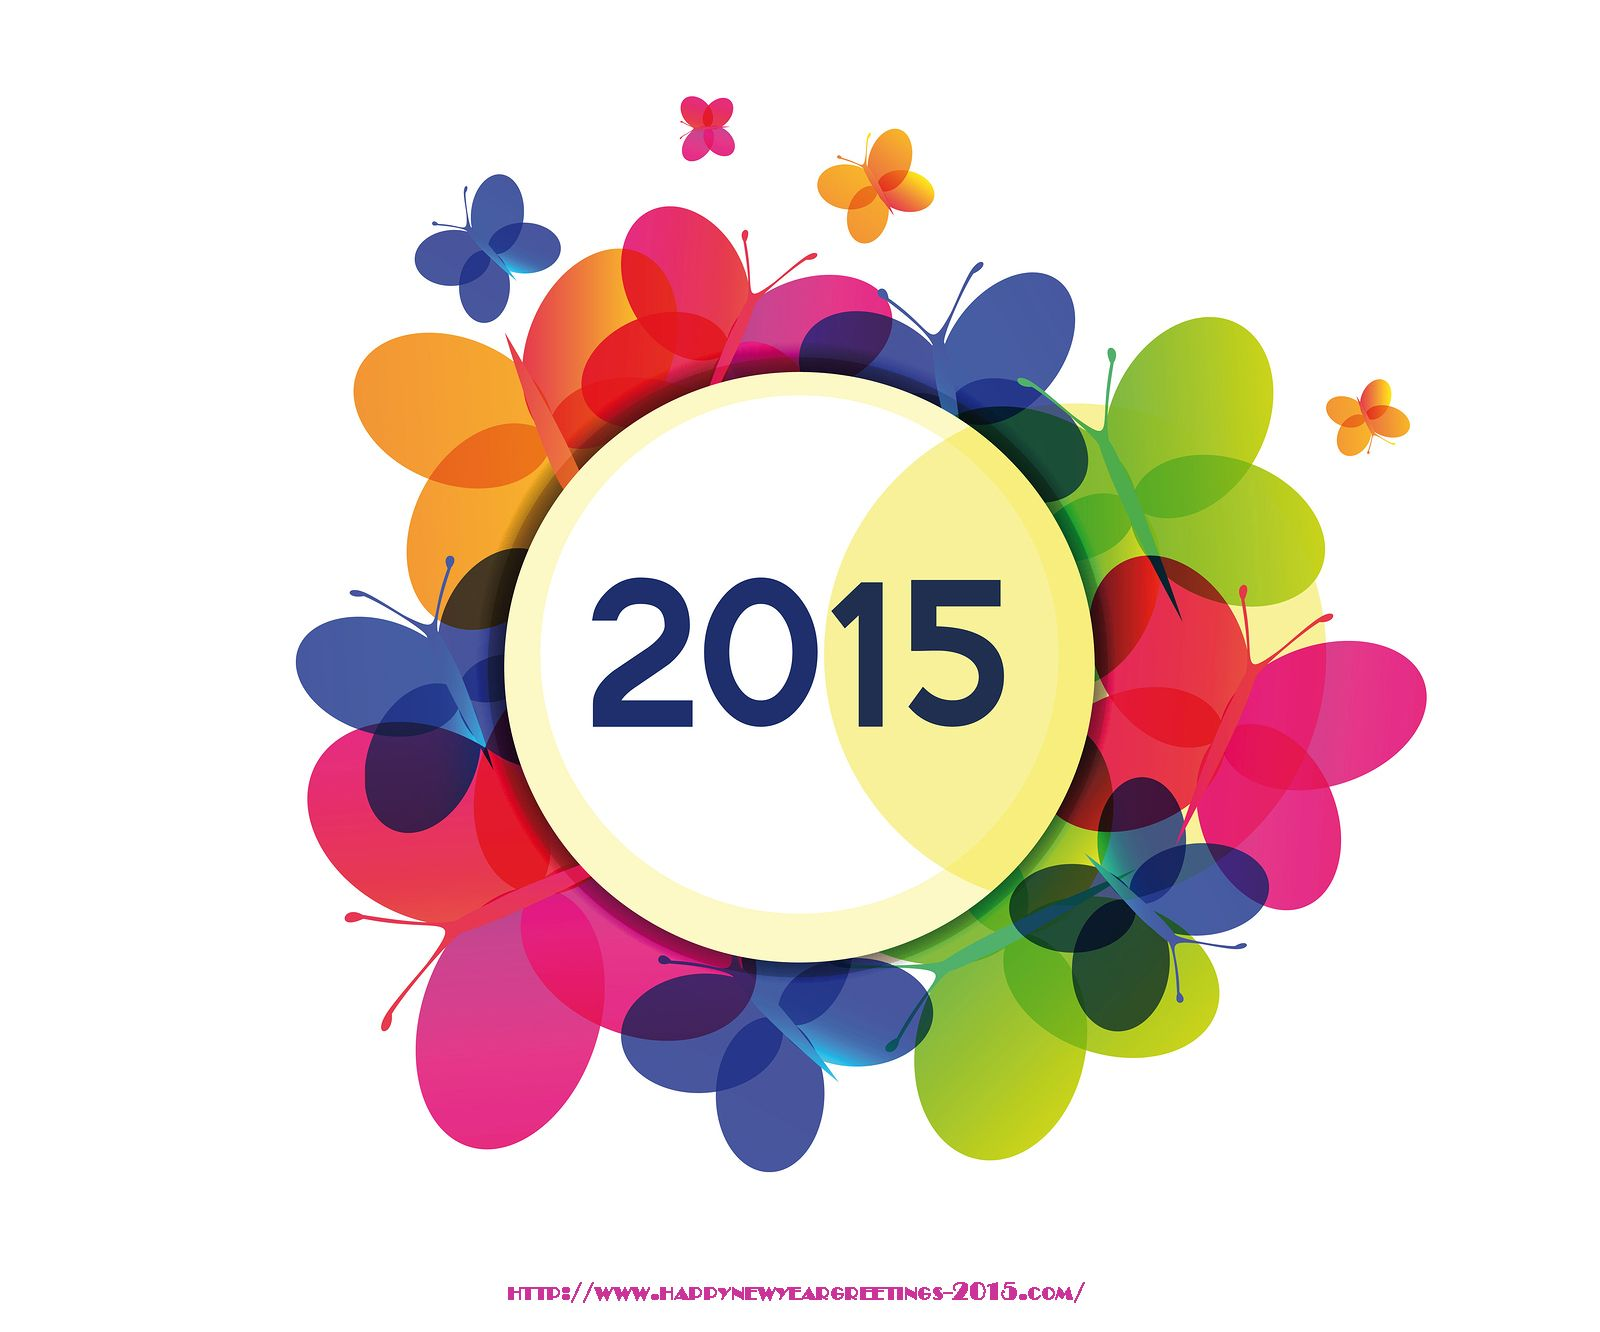 Happy New Year Greeting Cards 2015 Happy New Year Greeting Cards